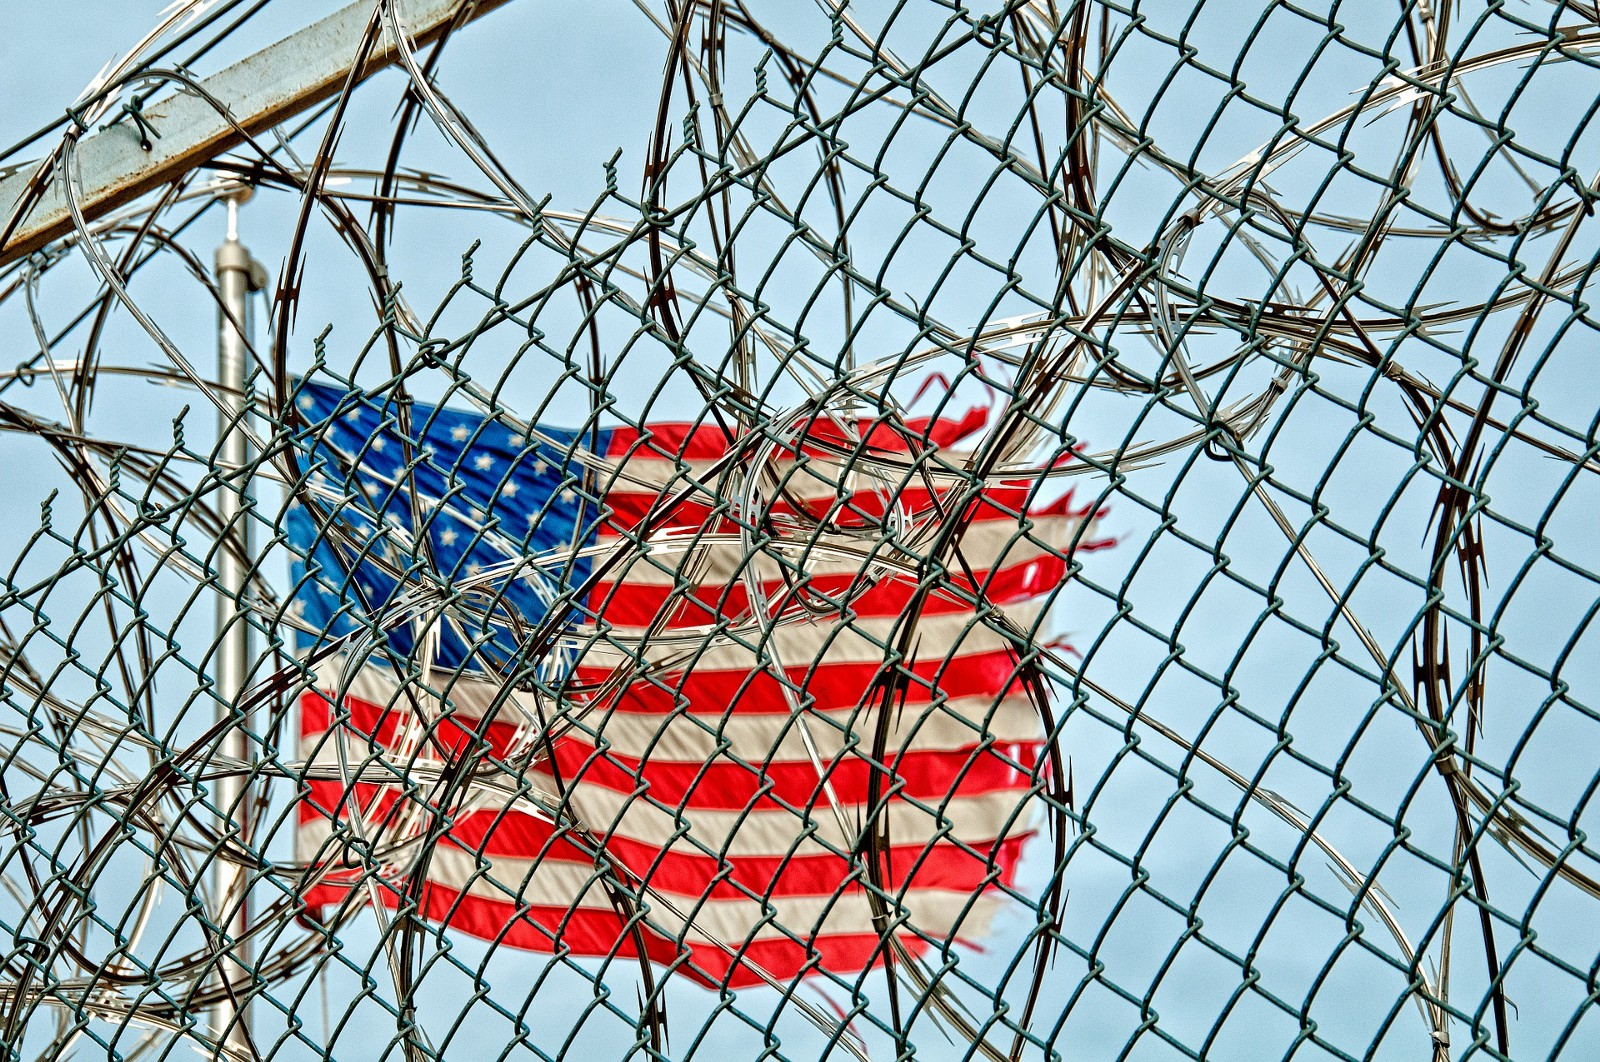 Is Illegally Entering The U.S. A Worse Crime Than Bank Robbery?